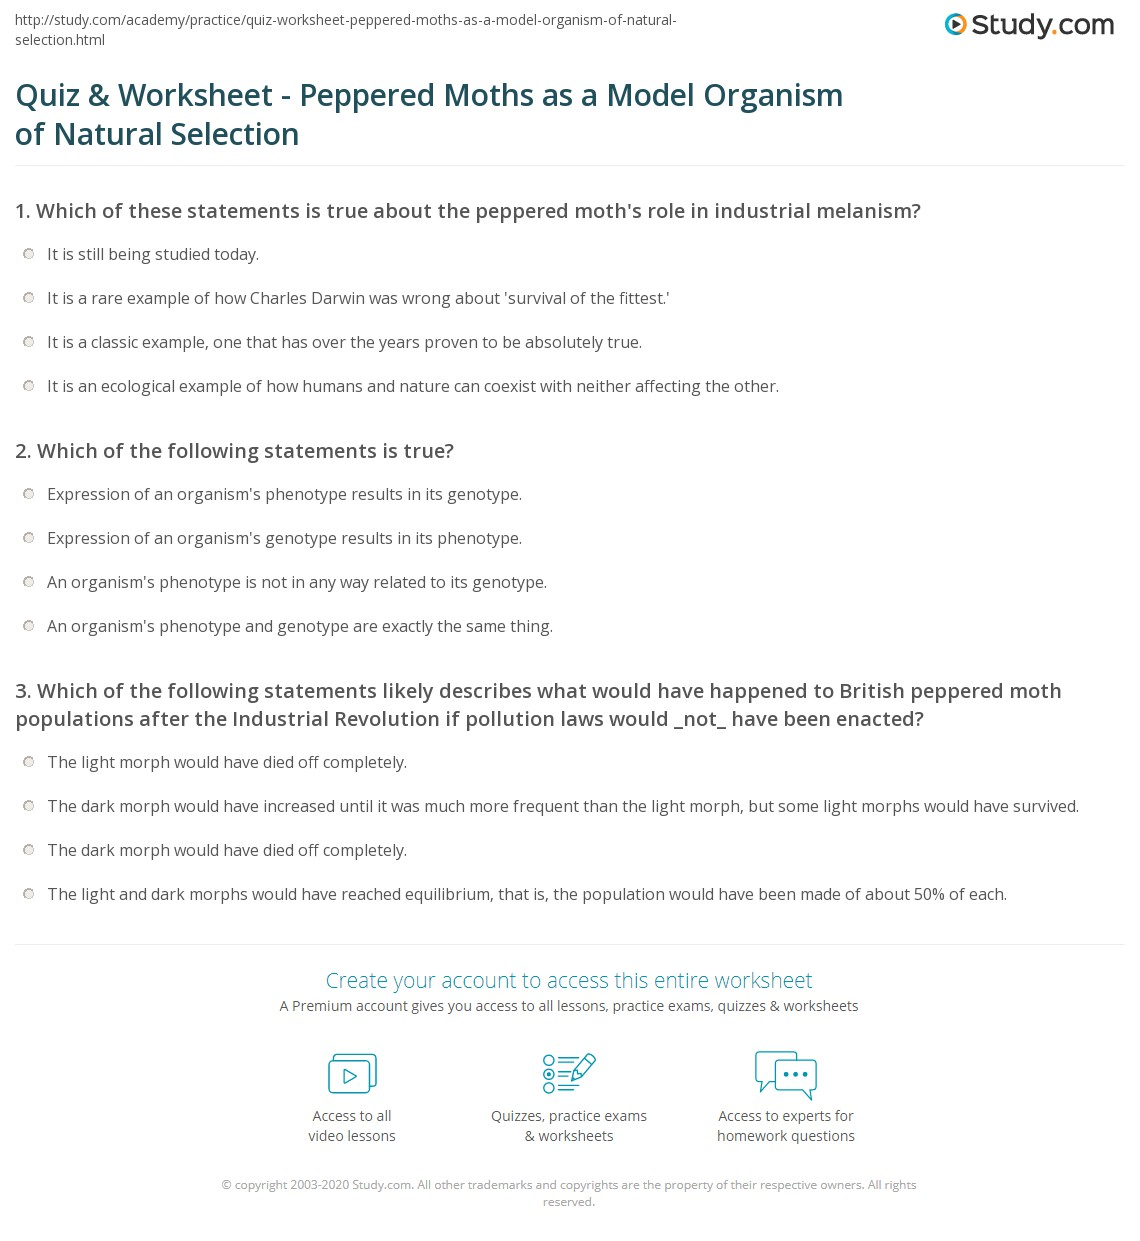 Quiz Worksheet Peppered Moths As A Model Organism Of